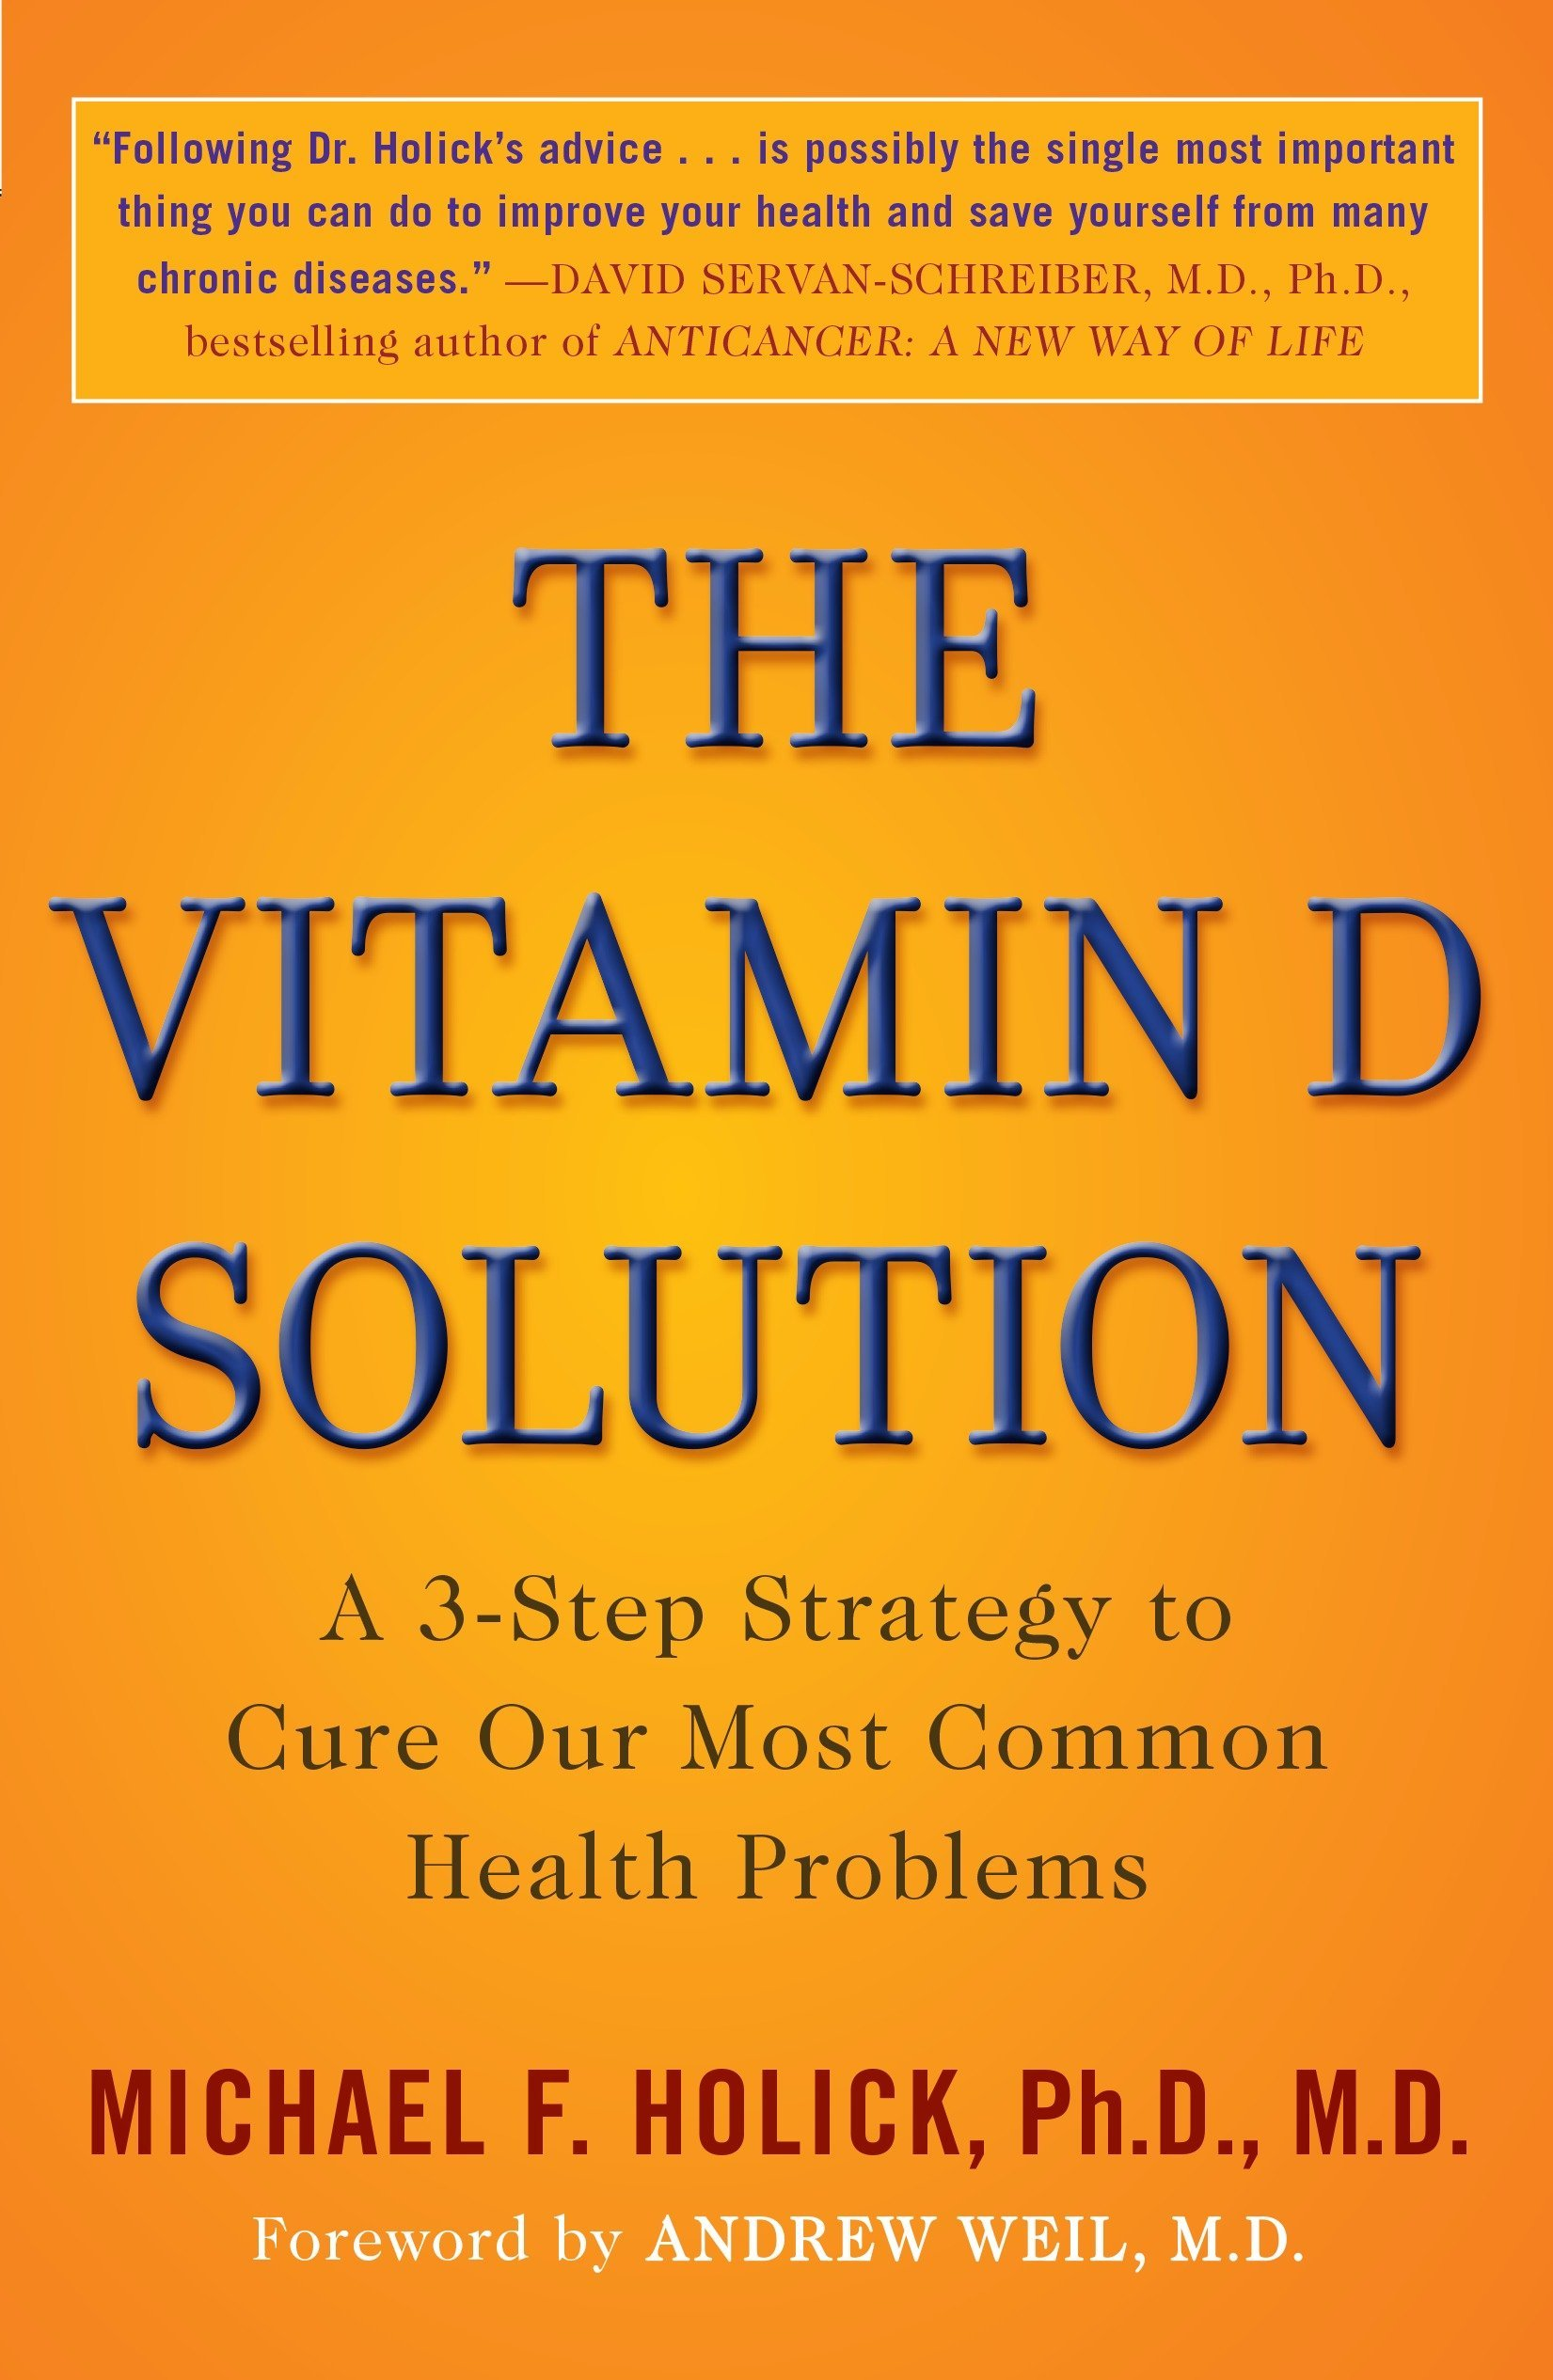 The Vitamin D Solution: A 3-Step Strategy to Cure